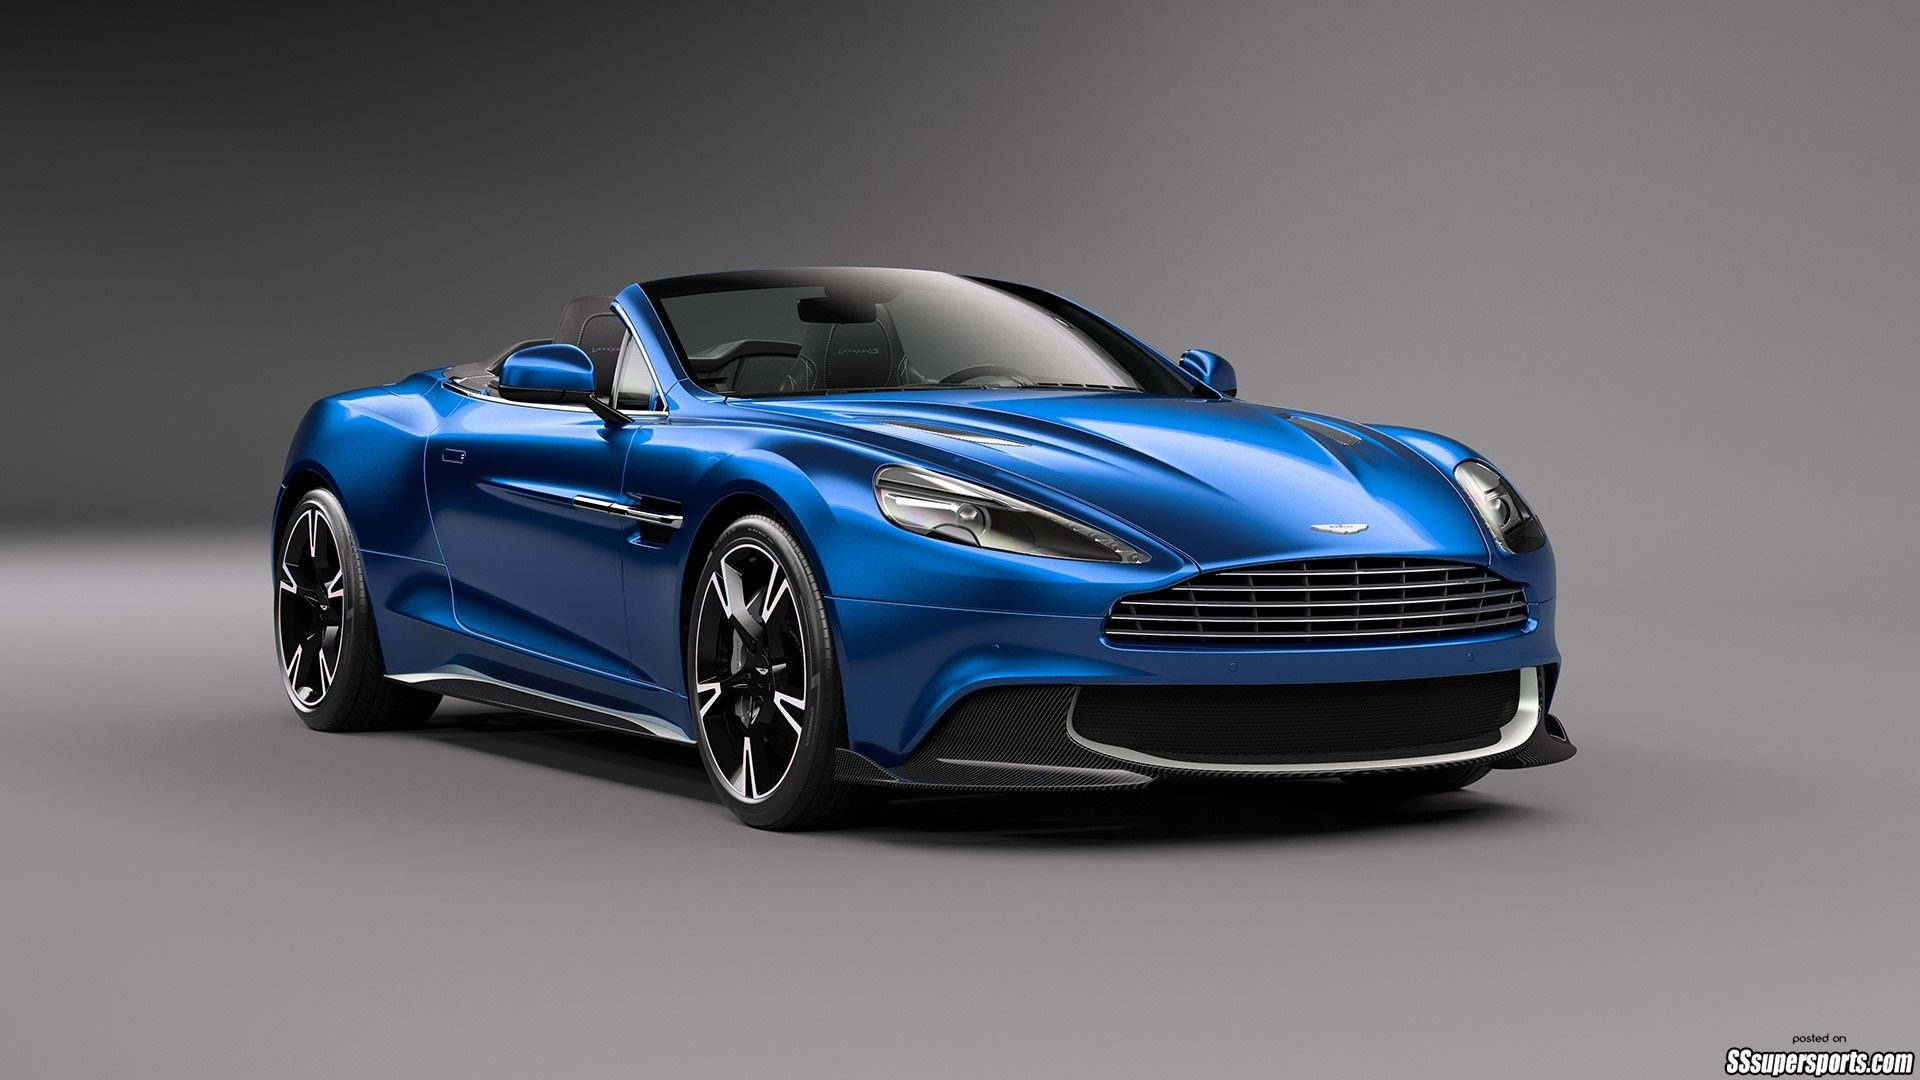 eb106206d985ccb7a0c7bab3847a9c24 Take A Look About aston Martin 2009 with Terrific Pictures Cars Review